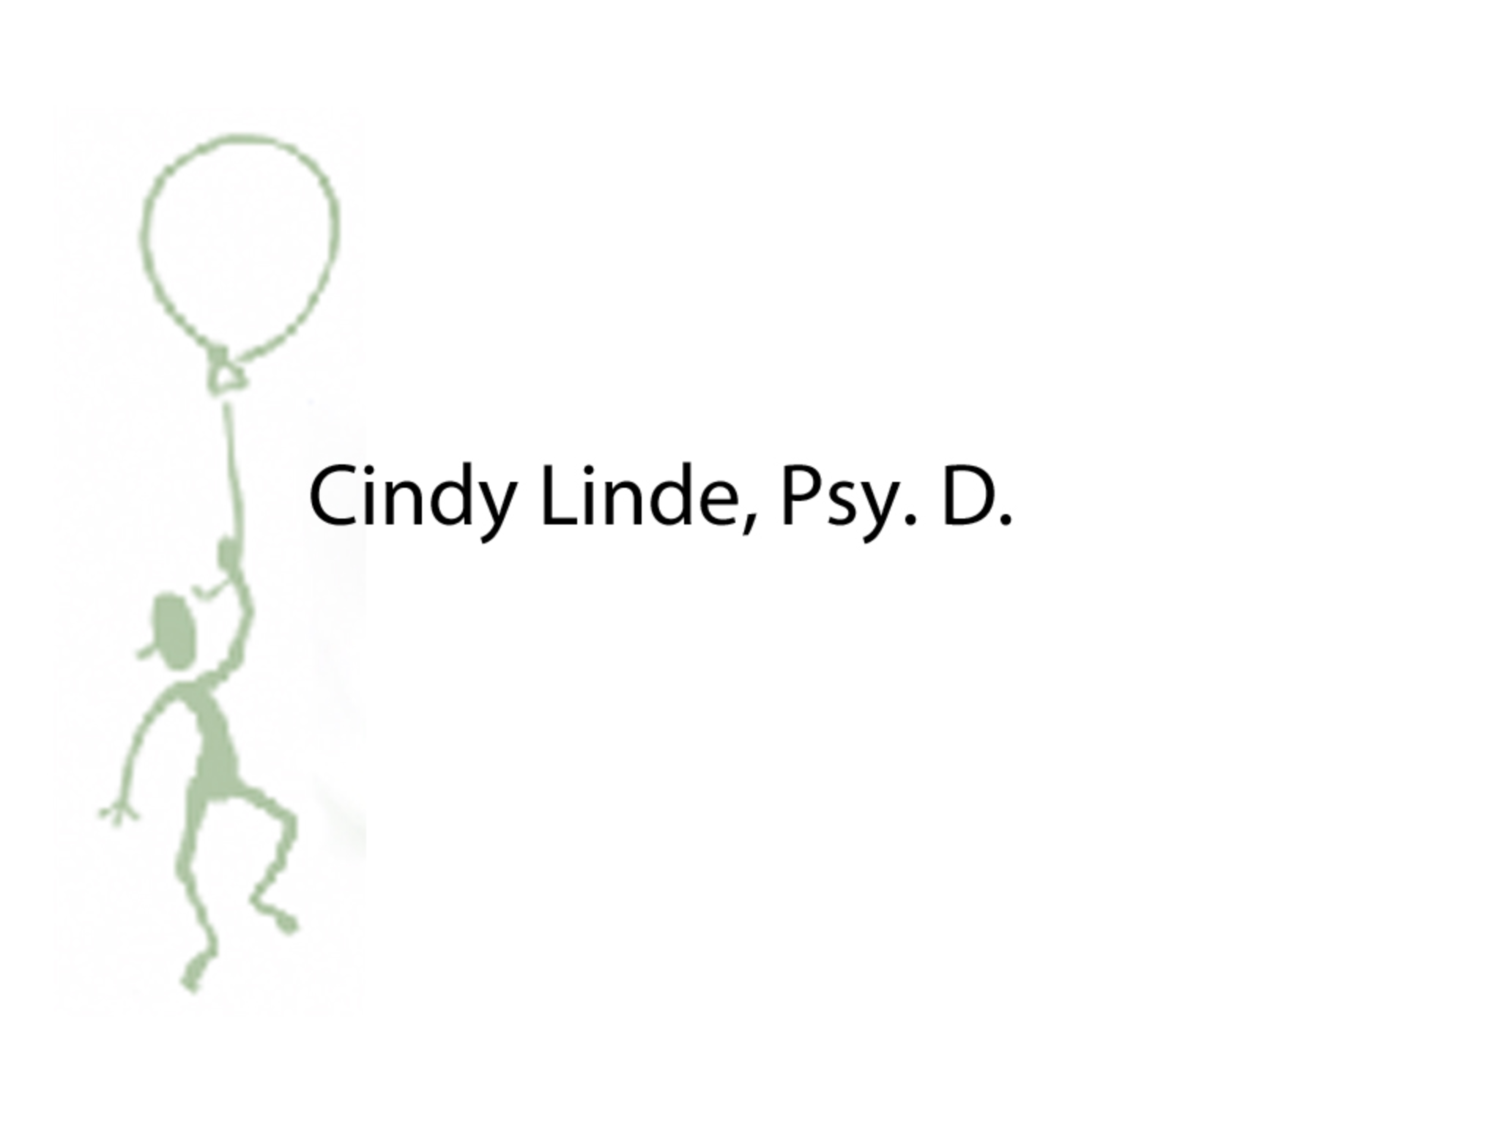 Mount Kisco Therapy | Therapy for Adolescents, Young Adults, Adults and Couples | Dr. Cindy Linde